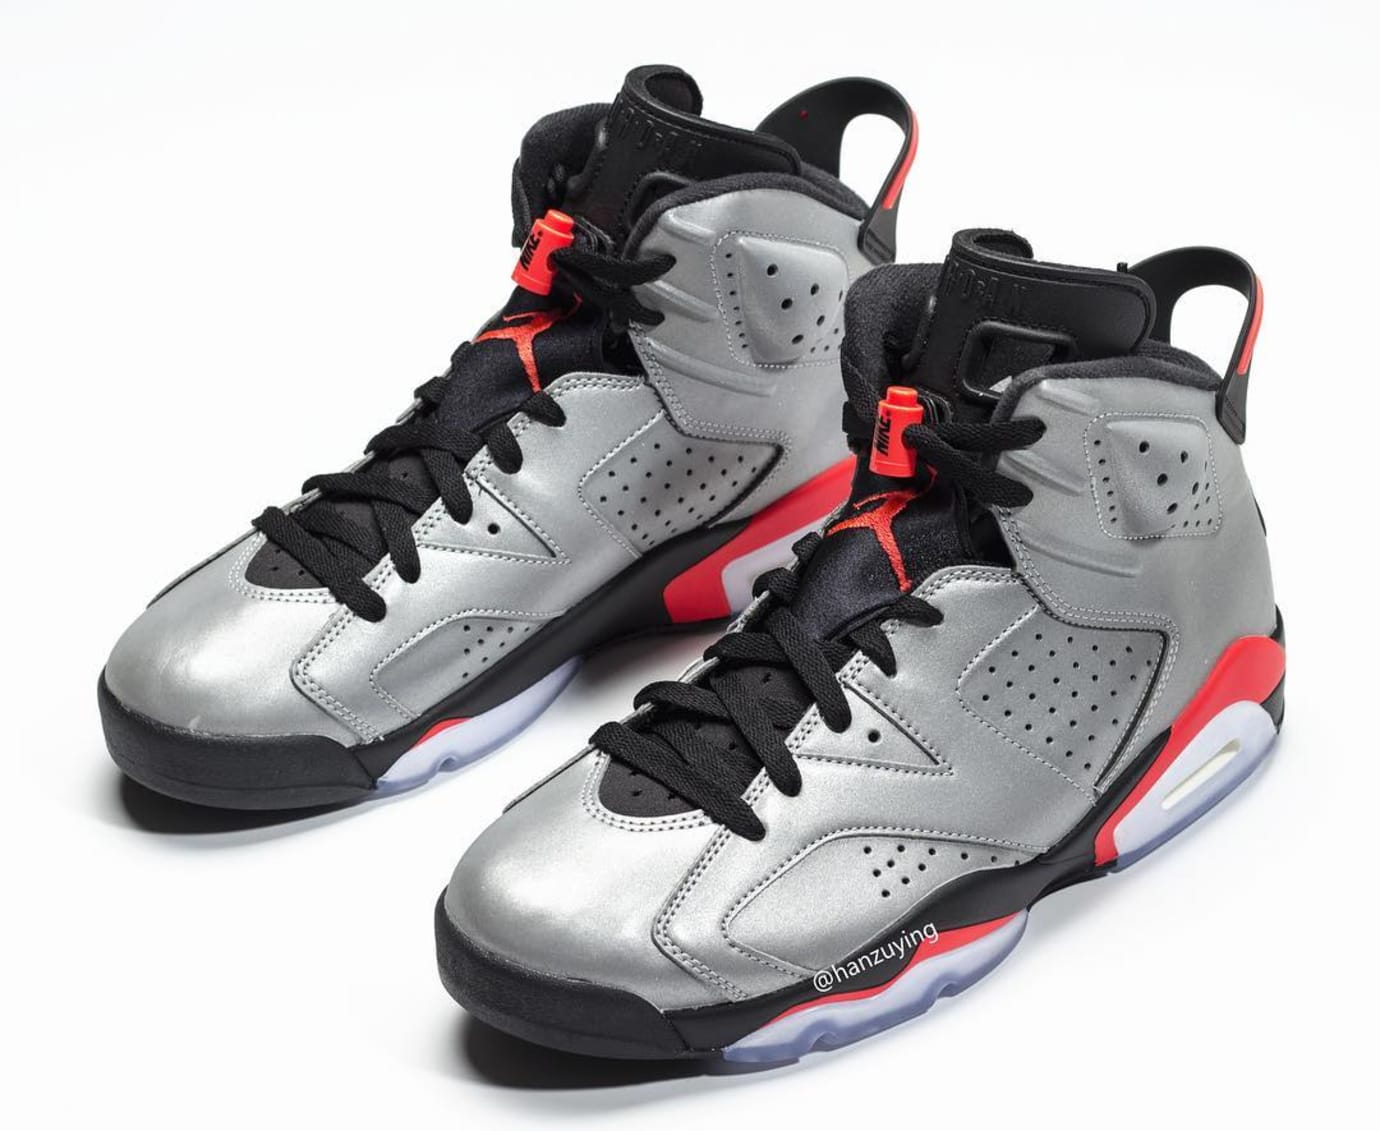 Air Jordan 6 Retro 'Reflective Infrared' CI4072-001